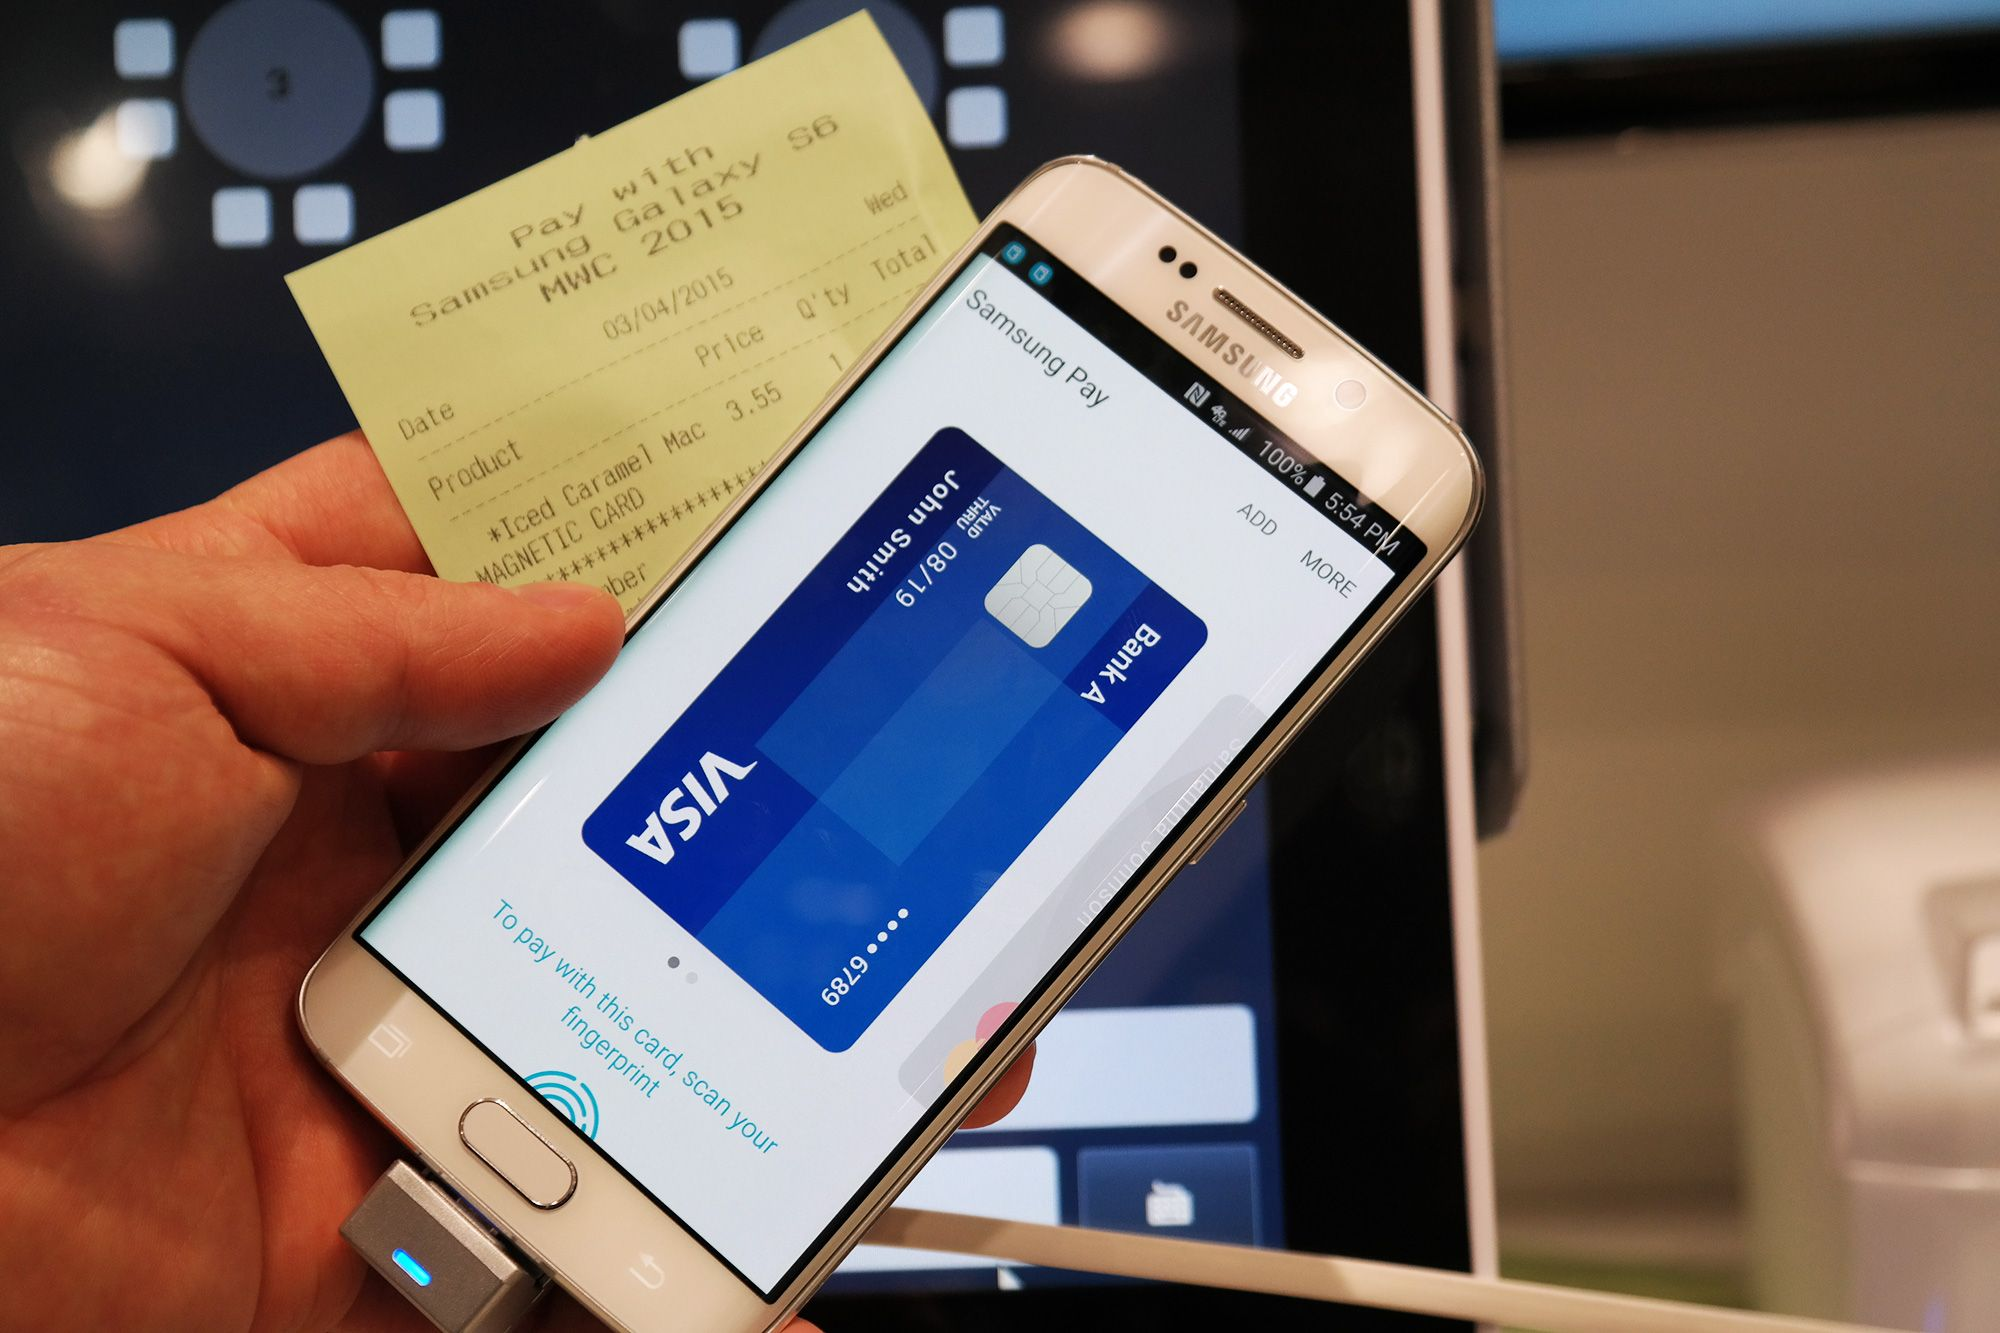 Samsung Pay now supports eight more credit and debit card issuers